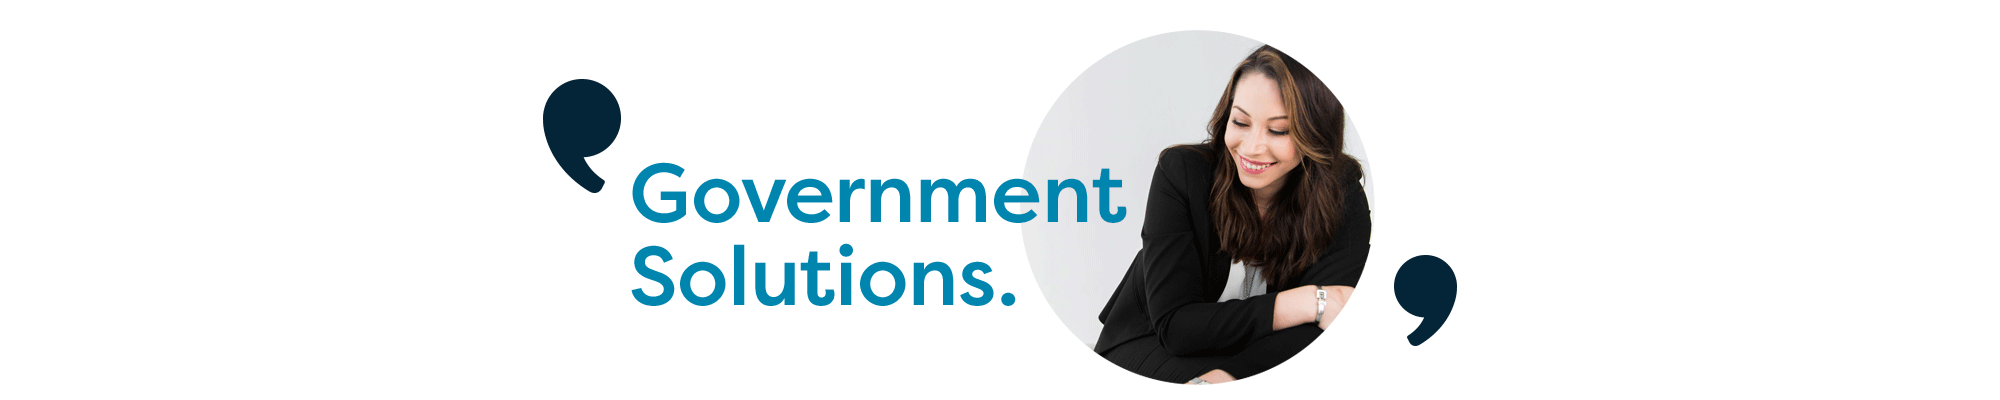 janine-marin-government-solutions-banner